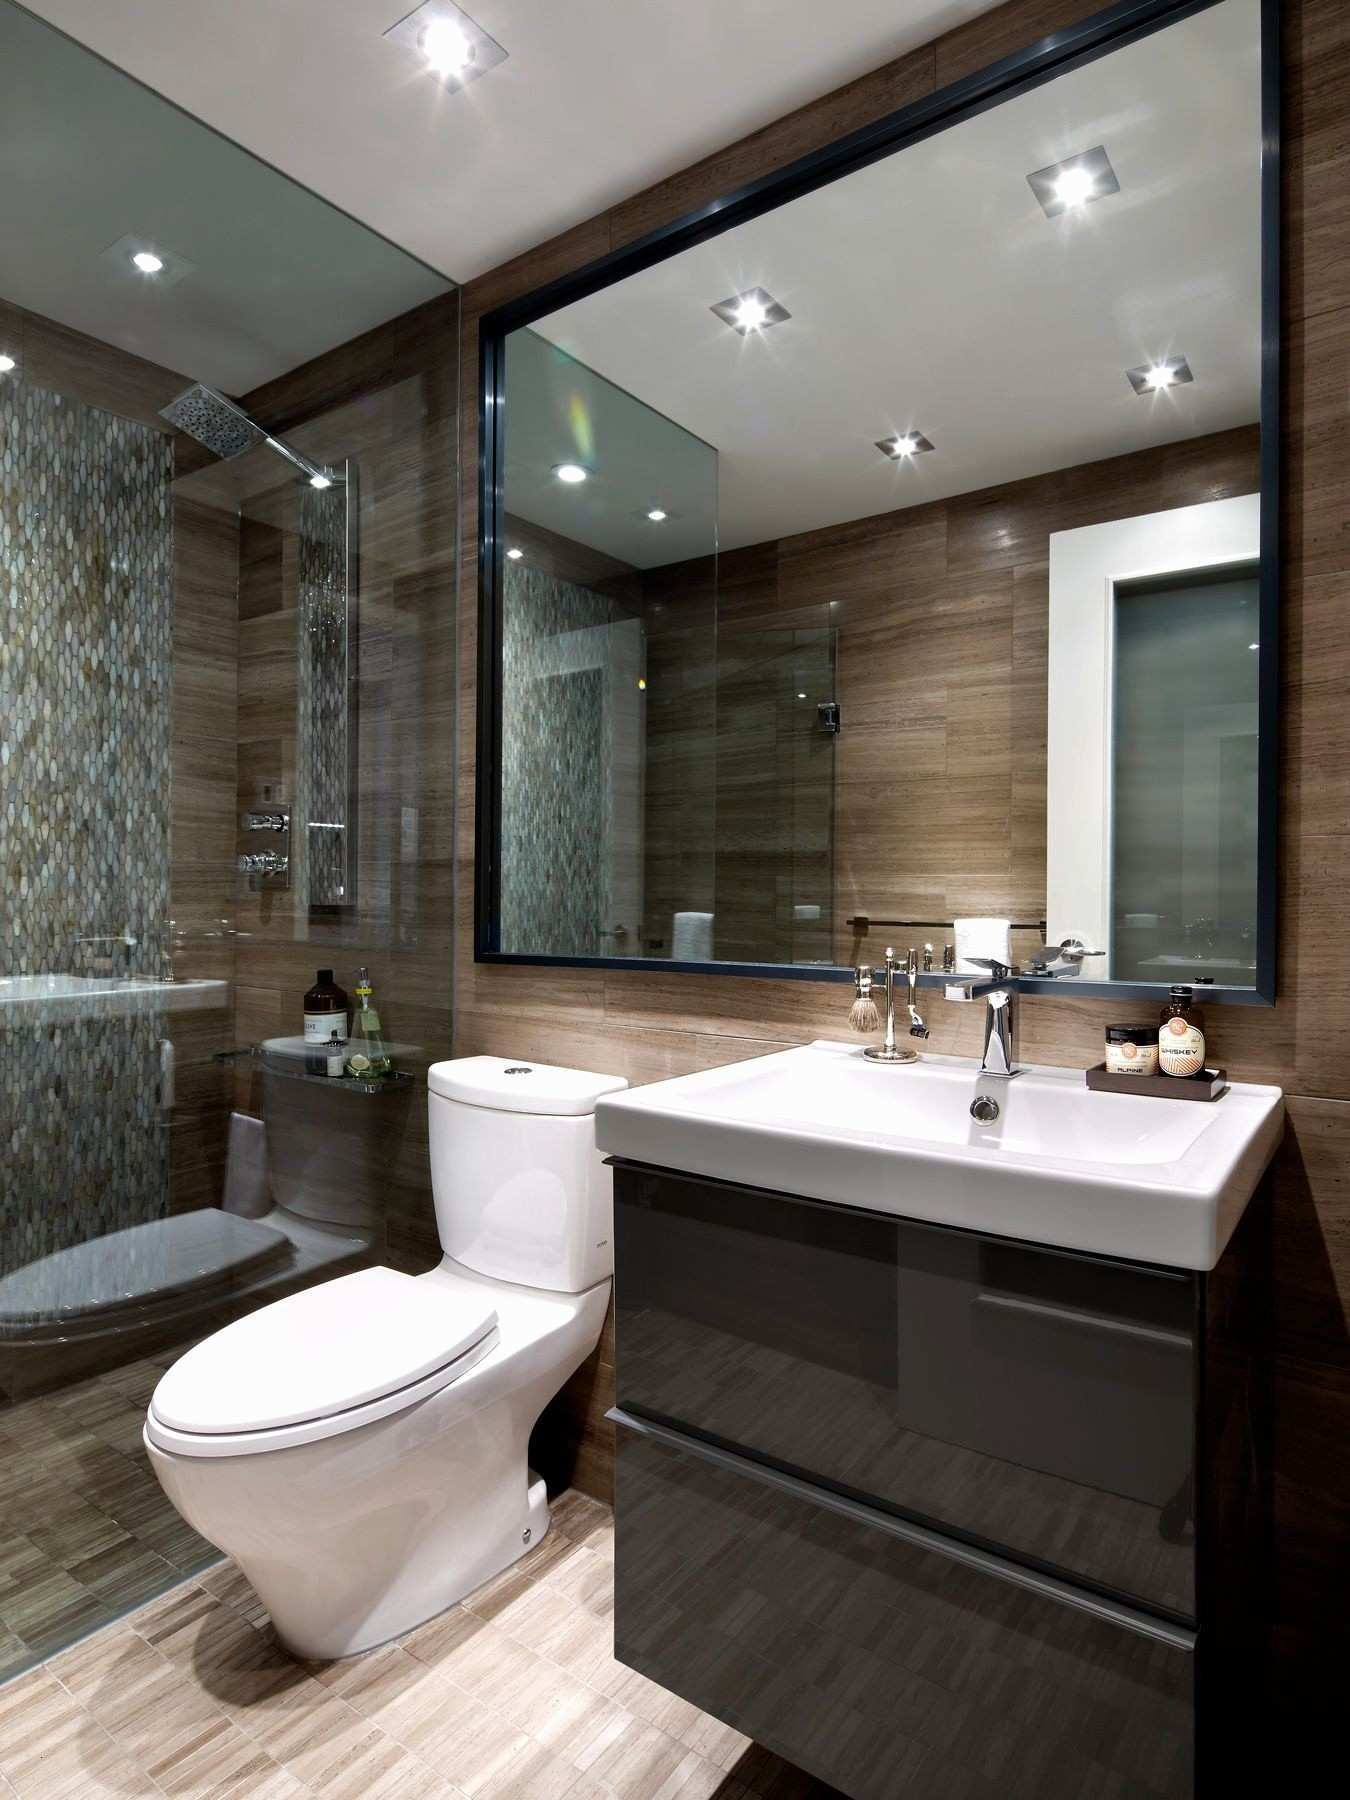 Awesome Bathroom Mirror Lighting Ideas terranovaenergyltd